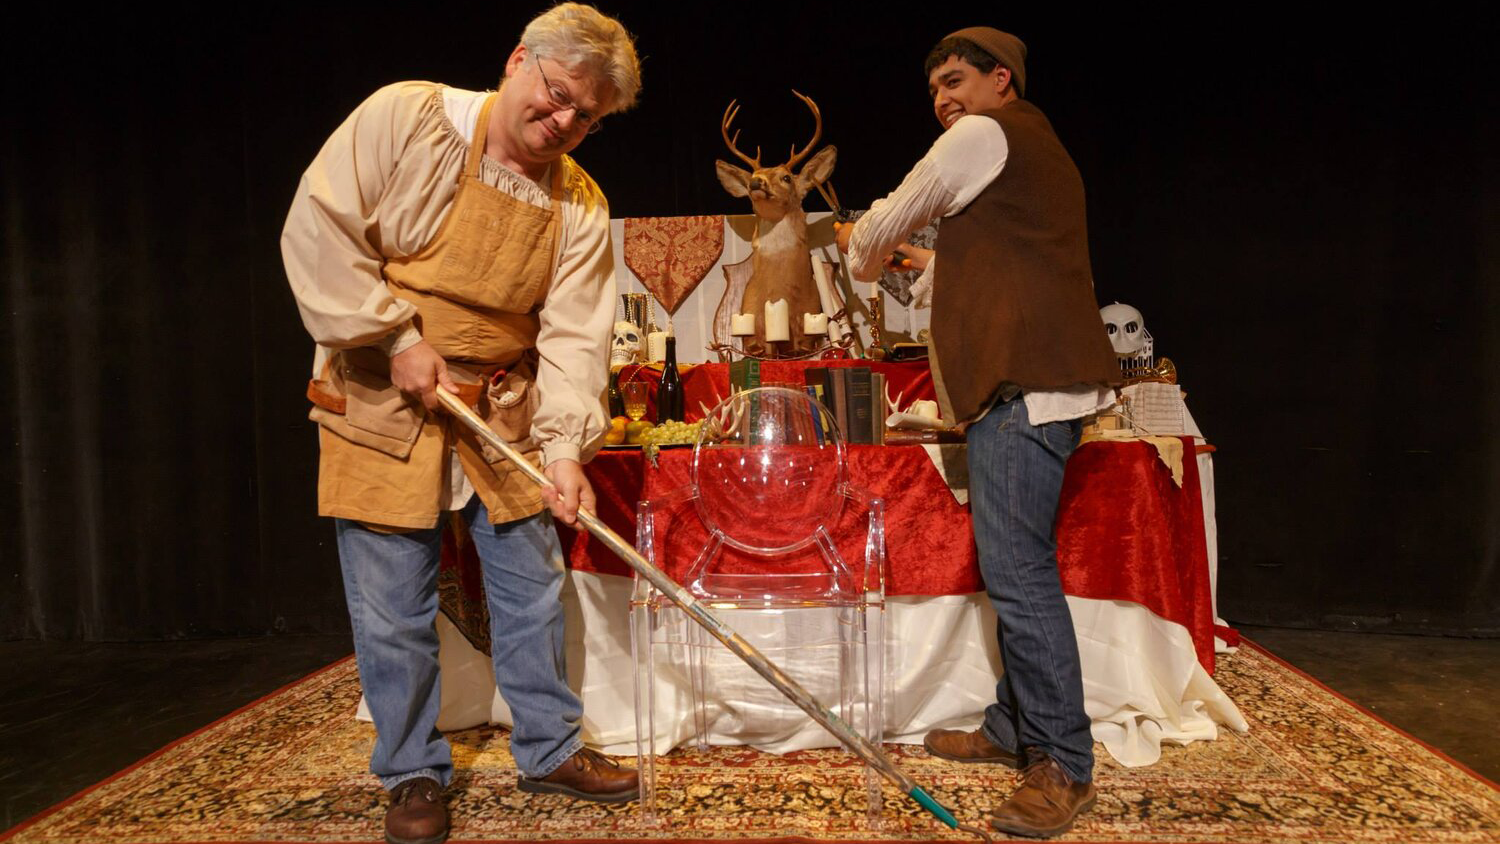 Actors playing gravediggers in Richard II standing in front of a table and clear plastic chair. One is holding a gardening tool.